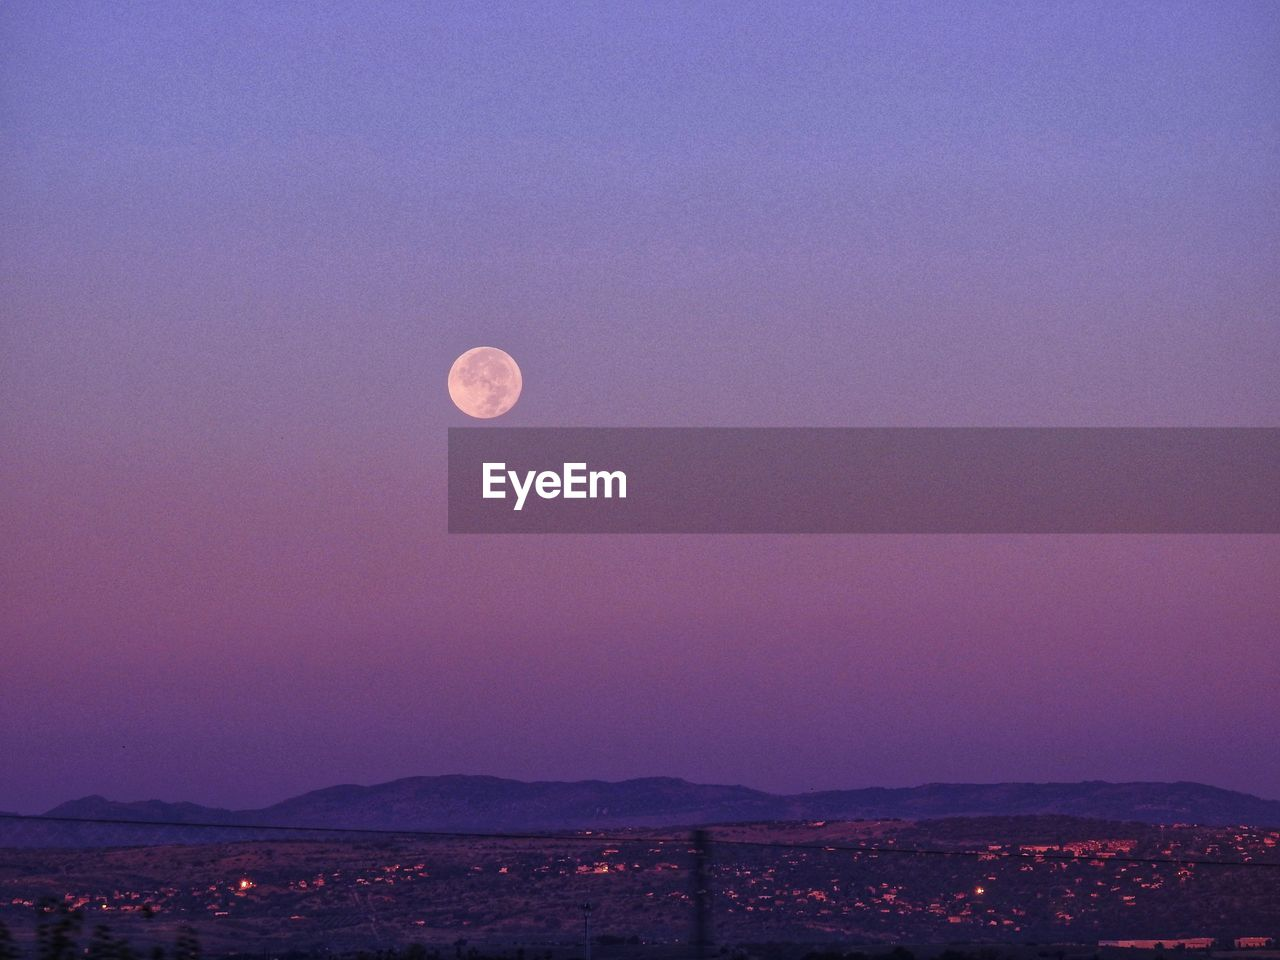 sky, moon, beauty in nature, scenics - nature, night, tranquil scene, full moon, tranquility, no people, nature, mountain, dusk, idyllic, space, astronomy, clear sky, copy space, outdoors, planetary moon, landscape